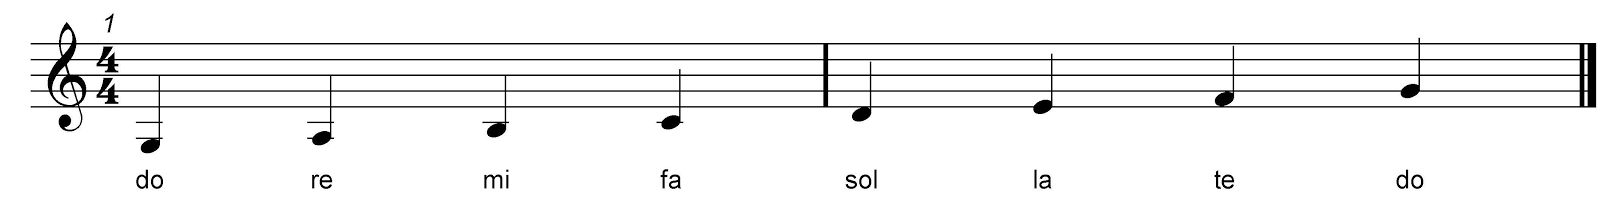 Ex 8 mixolydian with solfa